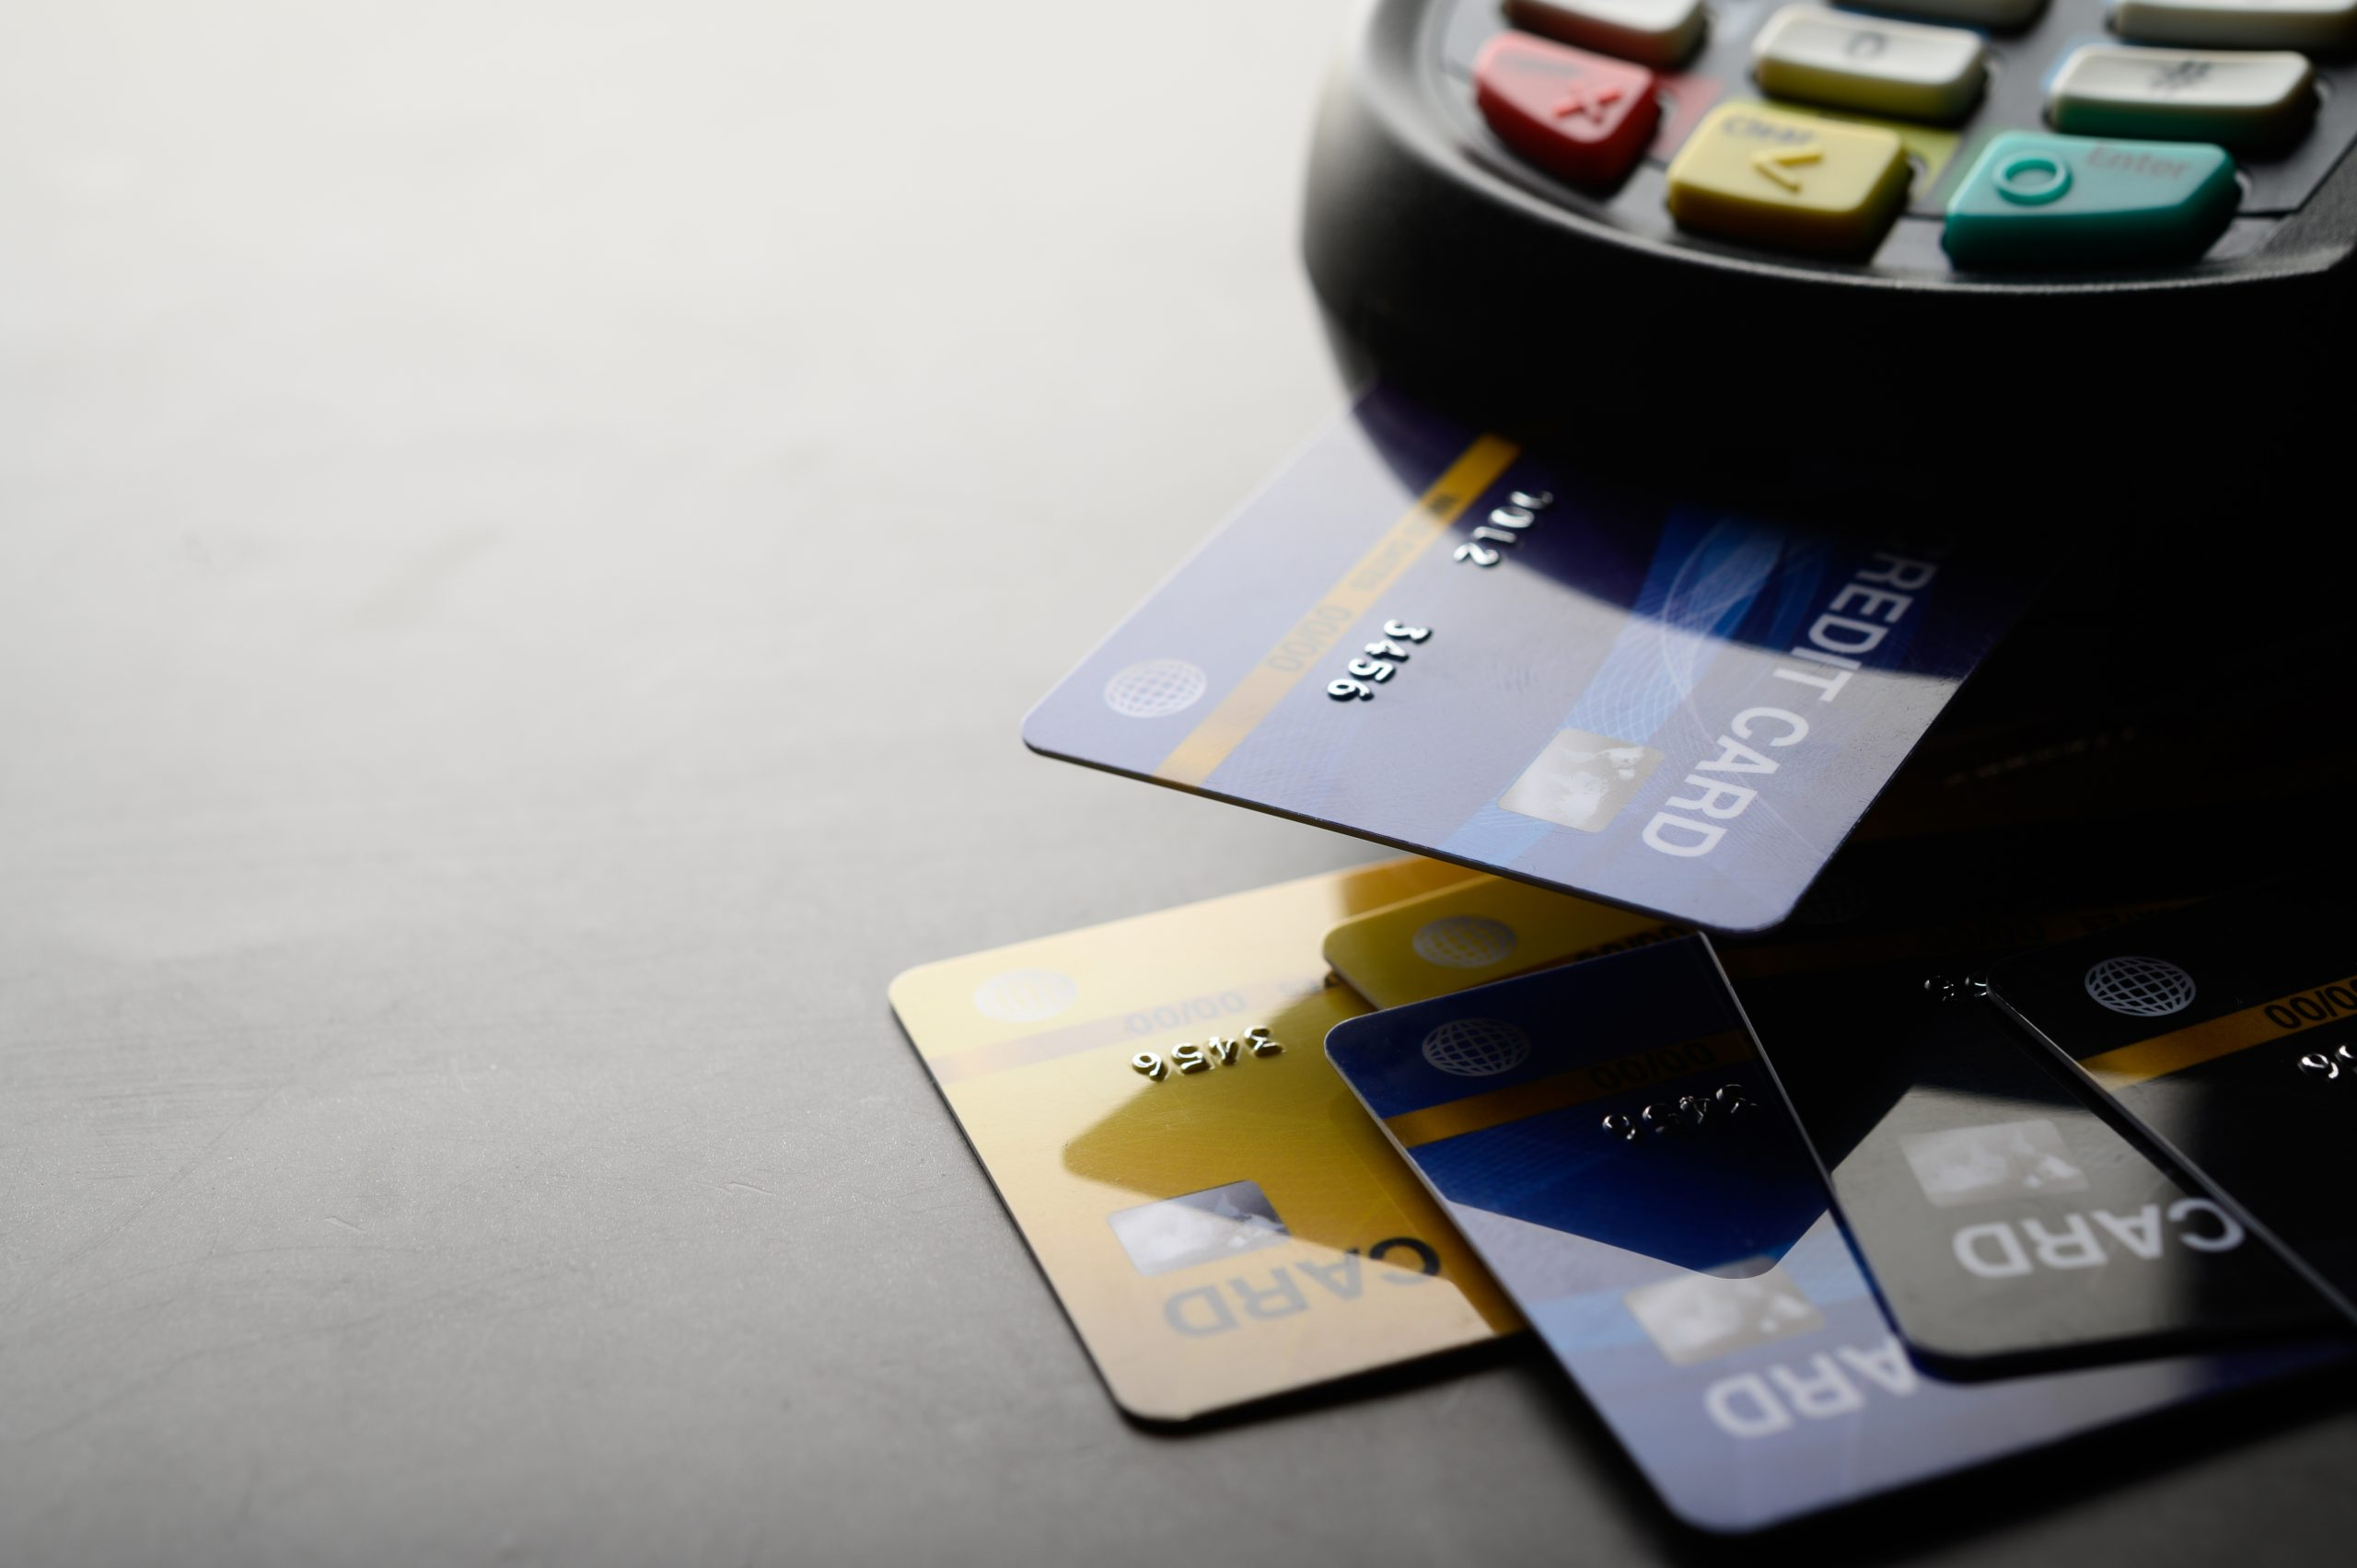 HOW IS THE PAYMENTS SECTOR REACTING TO THE FALL-OUT FROM COVID-19?